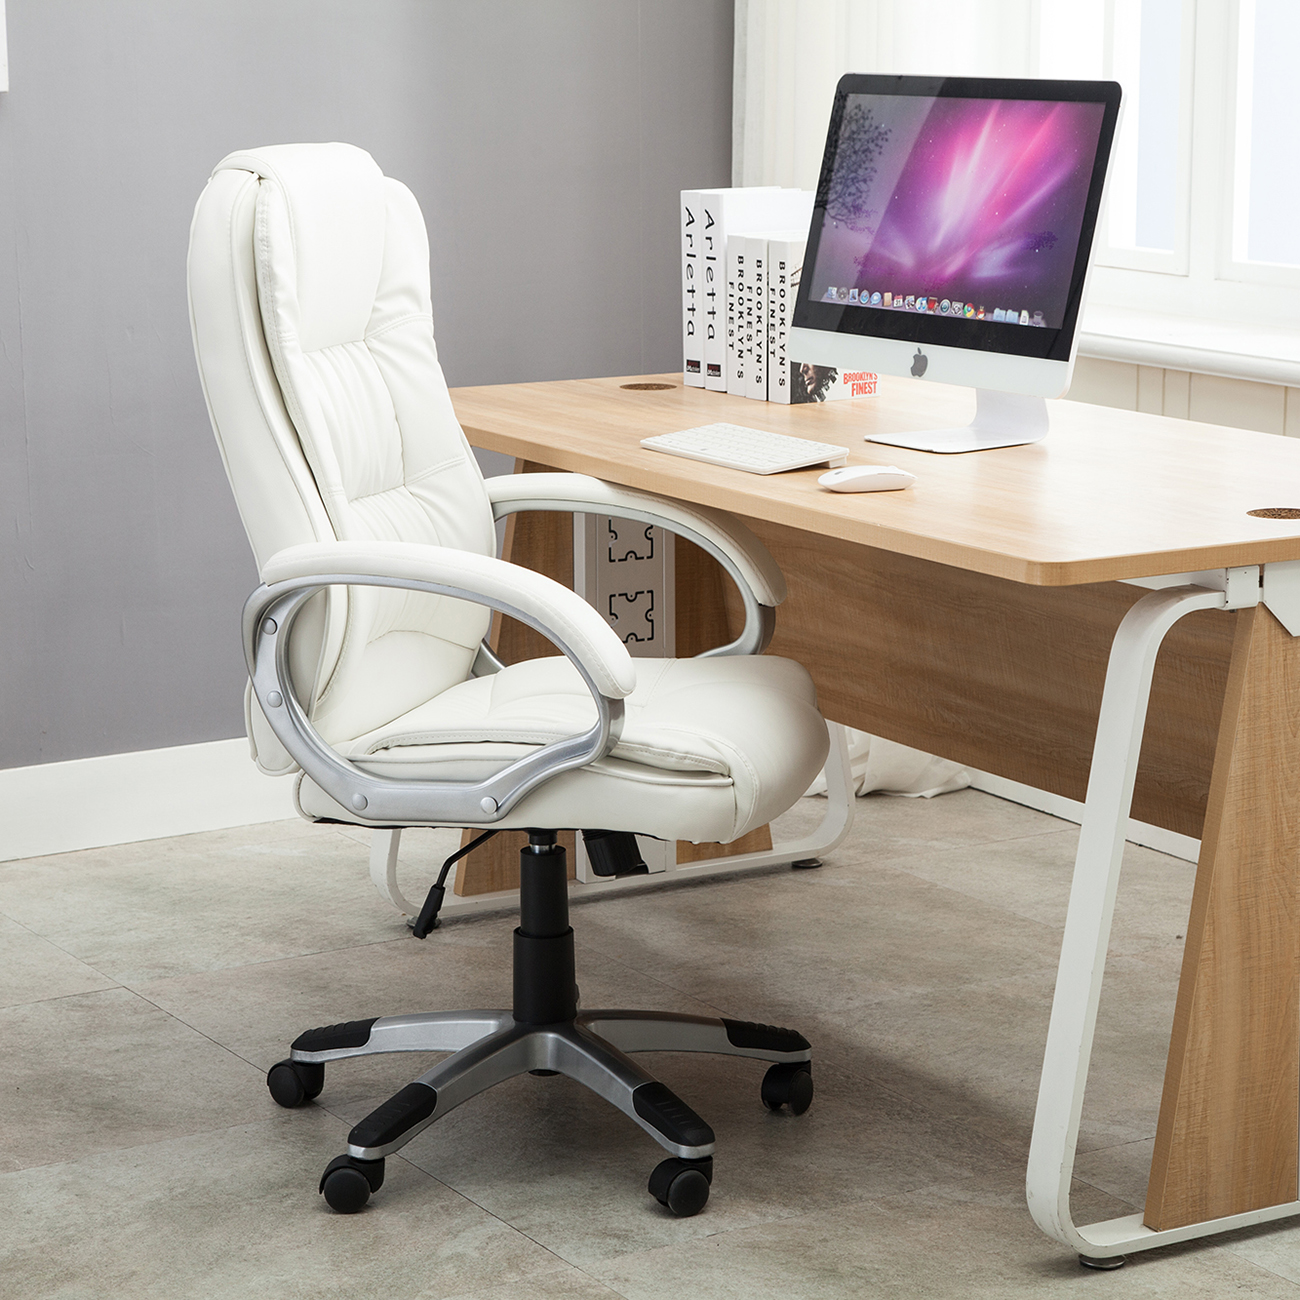 Ergonomic Chairs For Home White Pu Leather High Back Office Chair Executive